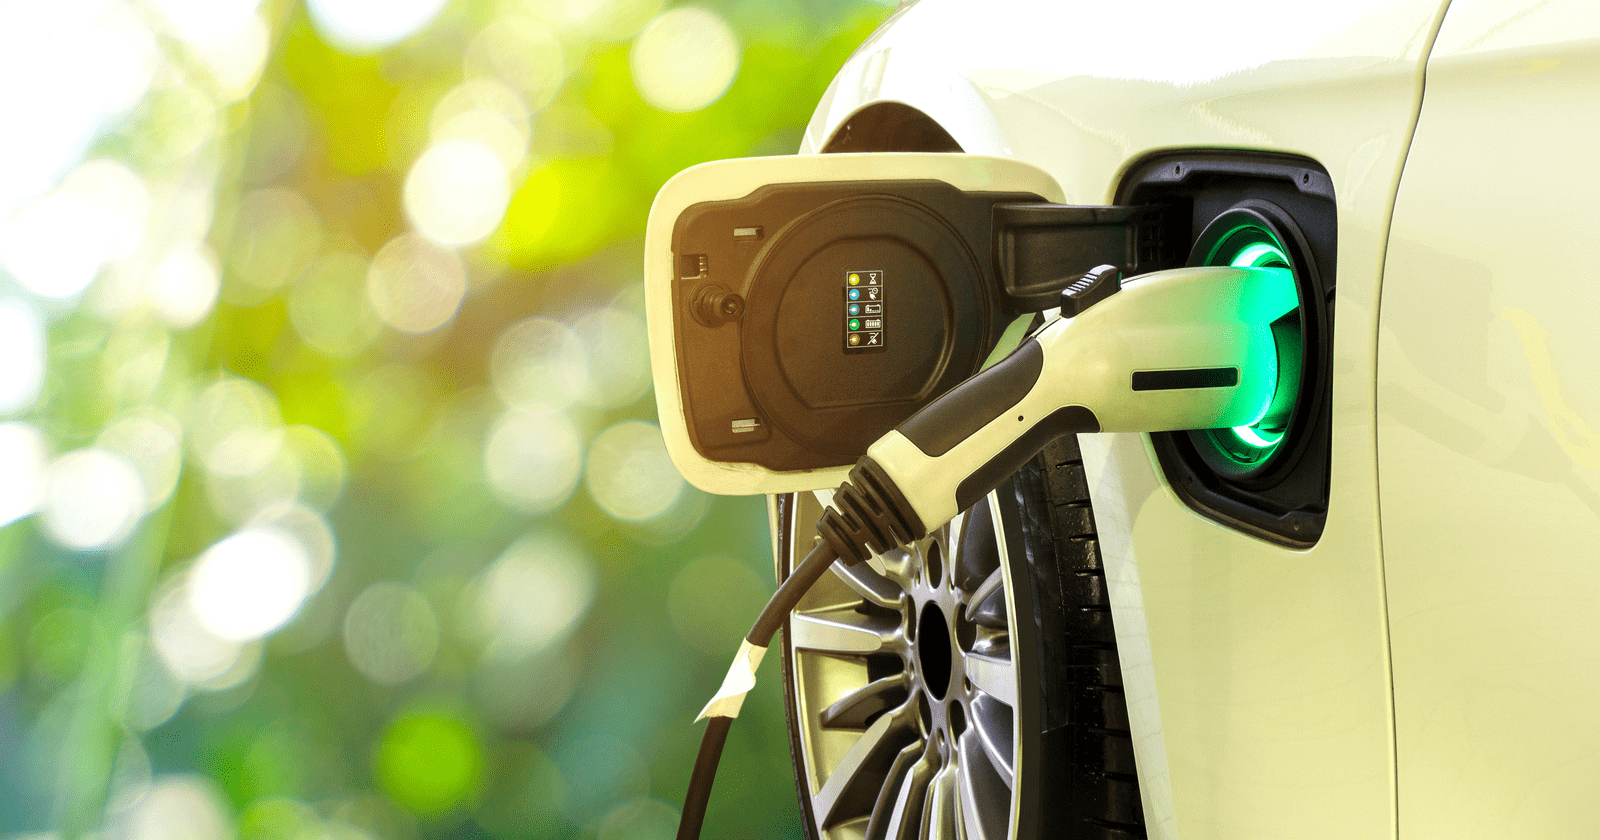 Google Maps Adds Locations of Electric Vehicle Charging Stations - Search Engine Journal